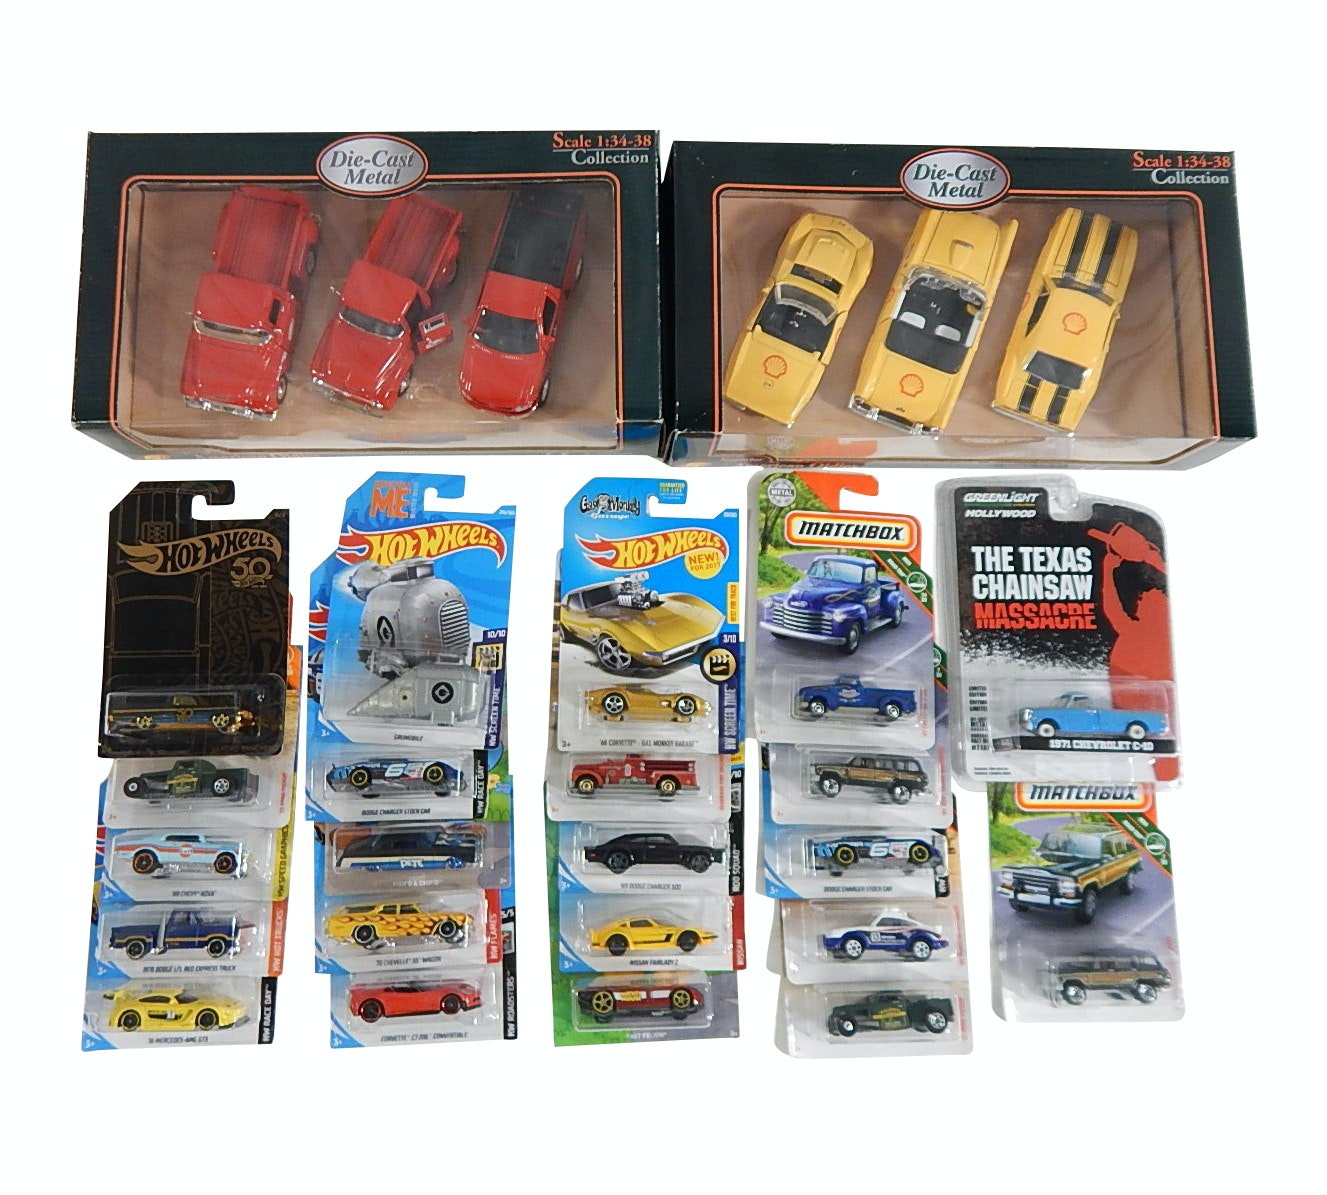 Hotwheels and Matchbox Die Cast Cars,Texaco and Shell Oil Truck and Car Box Sets